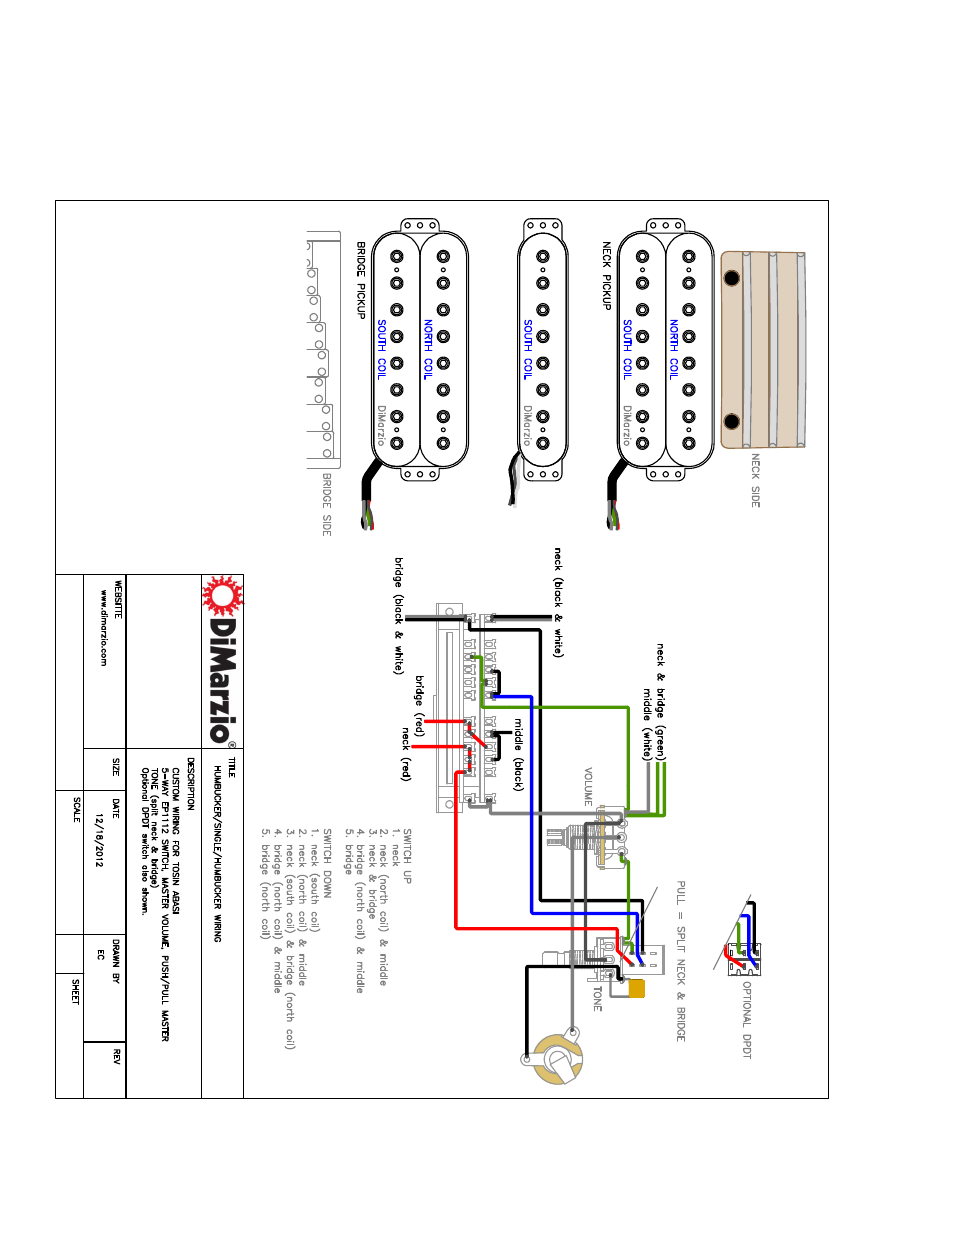 Rotary Switch Wiring Diagram Dimarzio Great Design Of Pickup 5 Way 36 16 Position